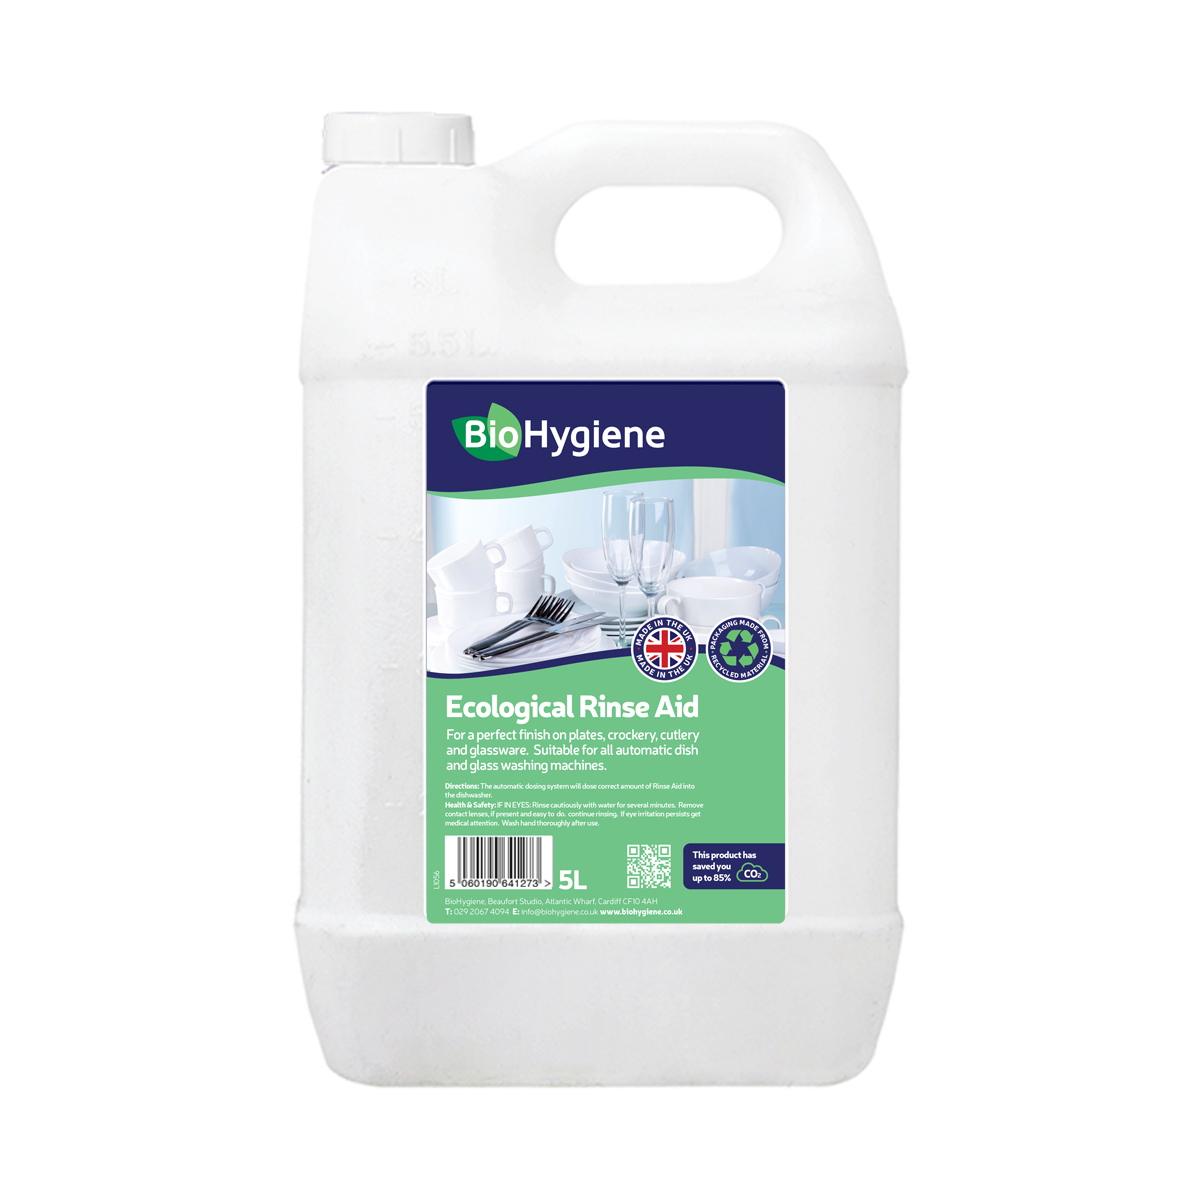 Dishwashing products BioHygiene Ecological Rinse Aid 5Litre Bottle Ref BH173